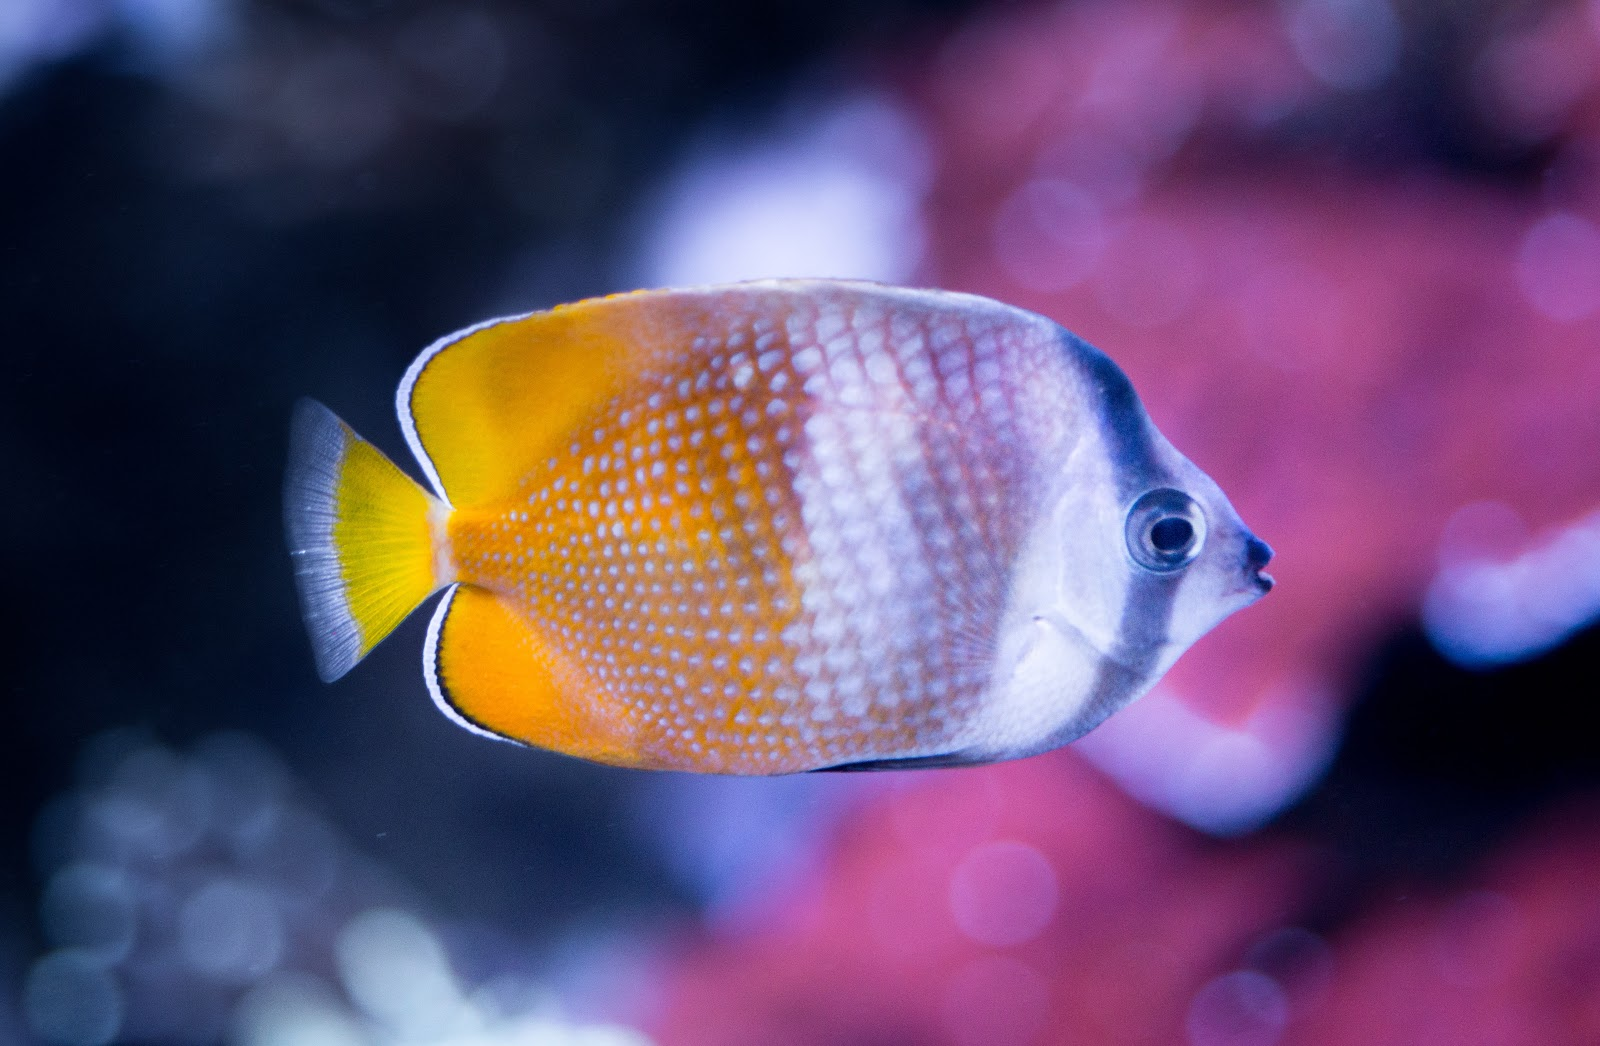 white-and-yellow-fish-close-up-photography-images